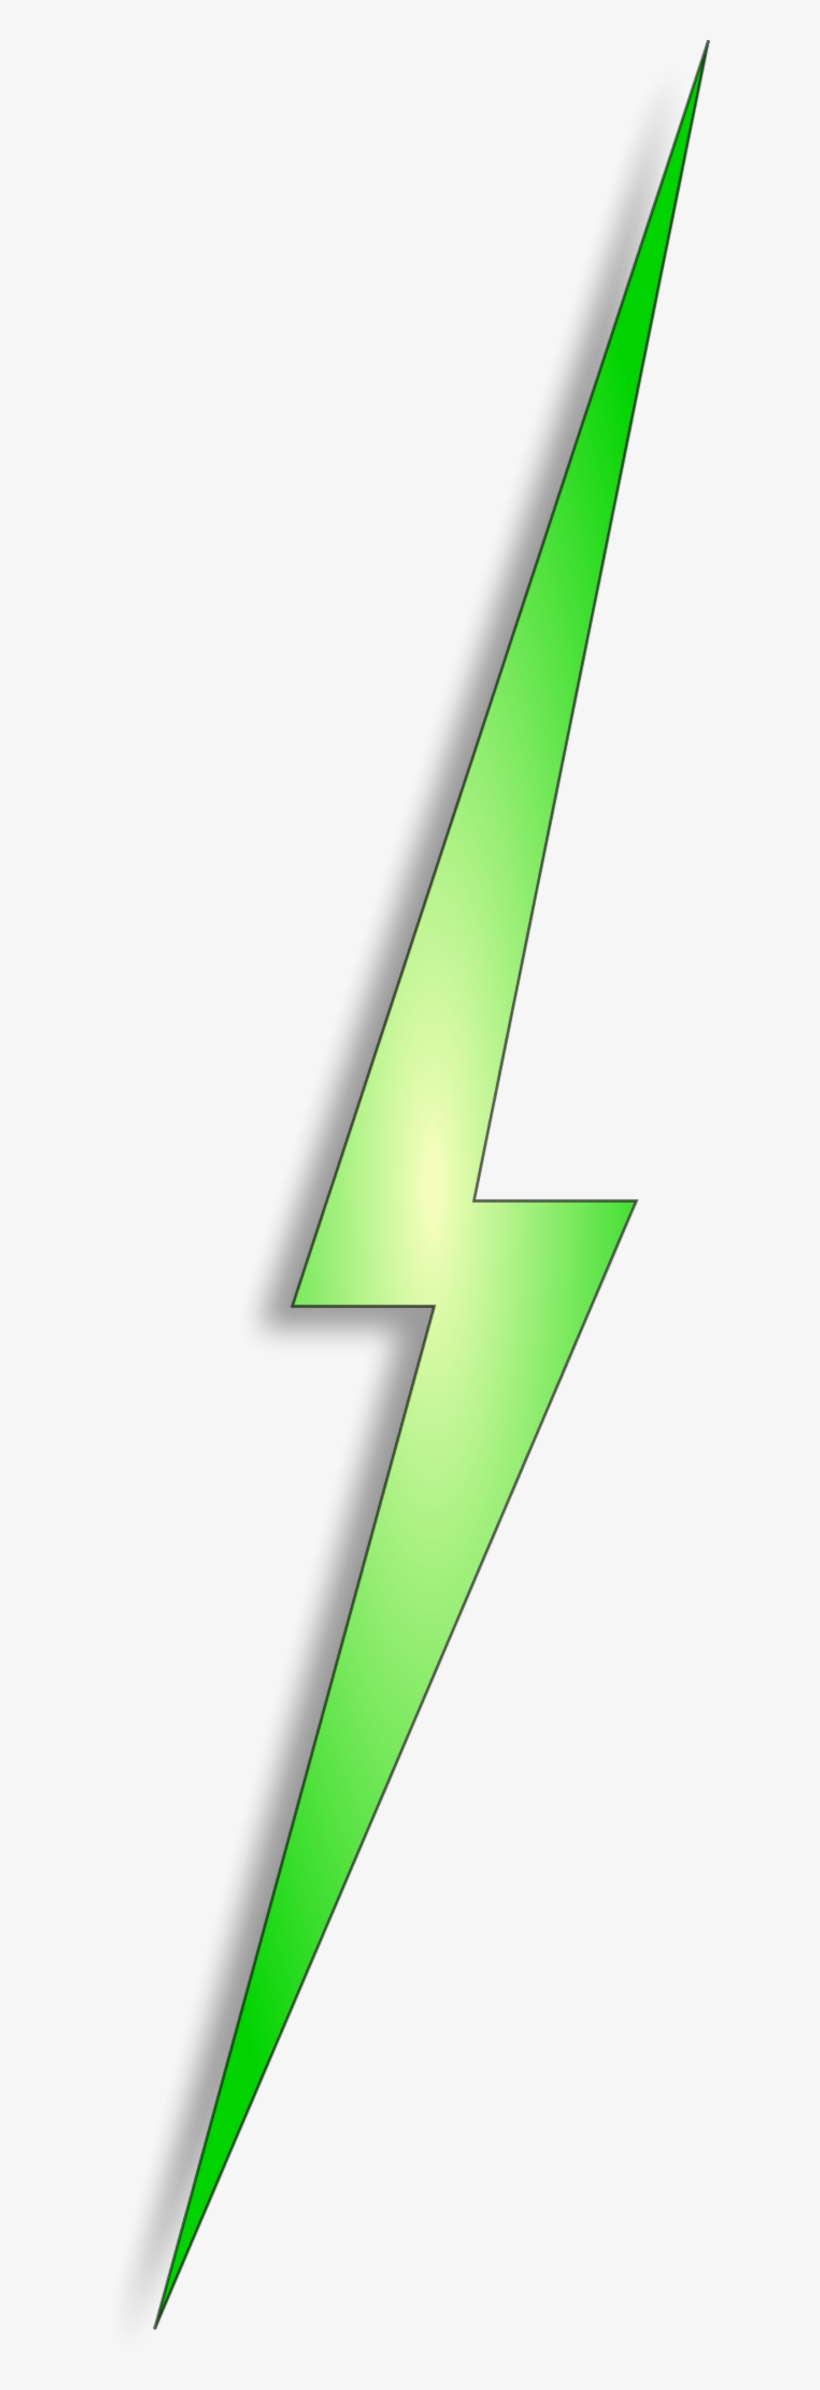 Electrical Clipart Red Lightning Bolt - Green Lightning Bolt Transparent, transparent png #2786823